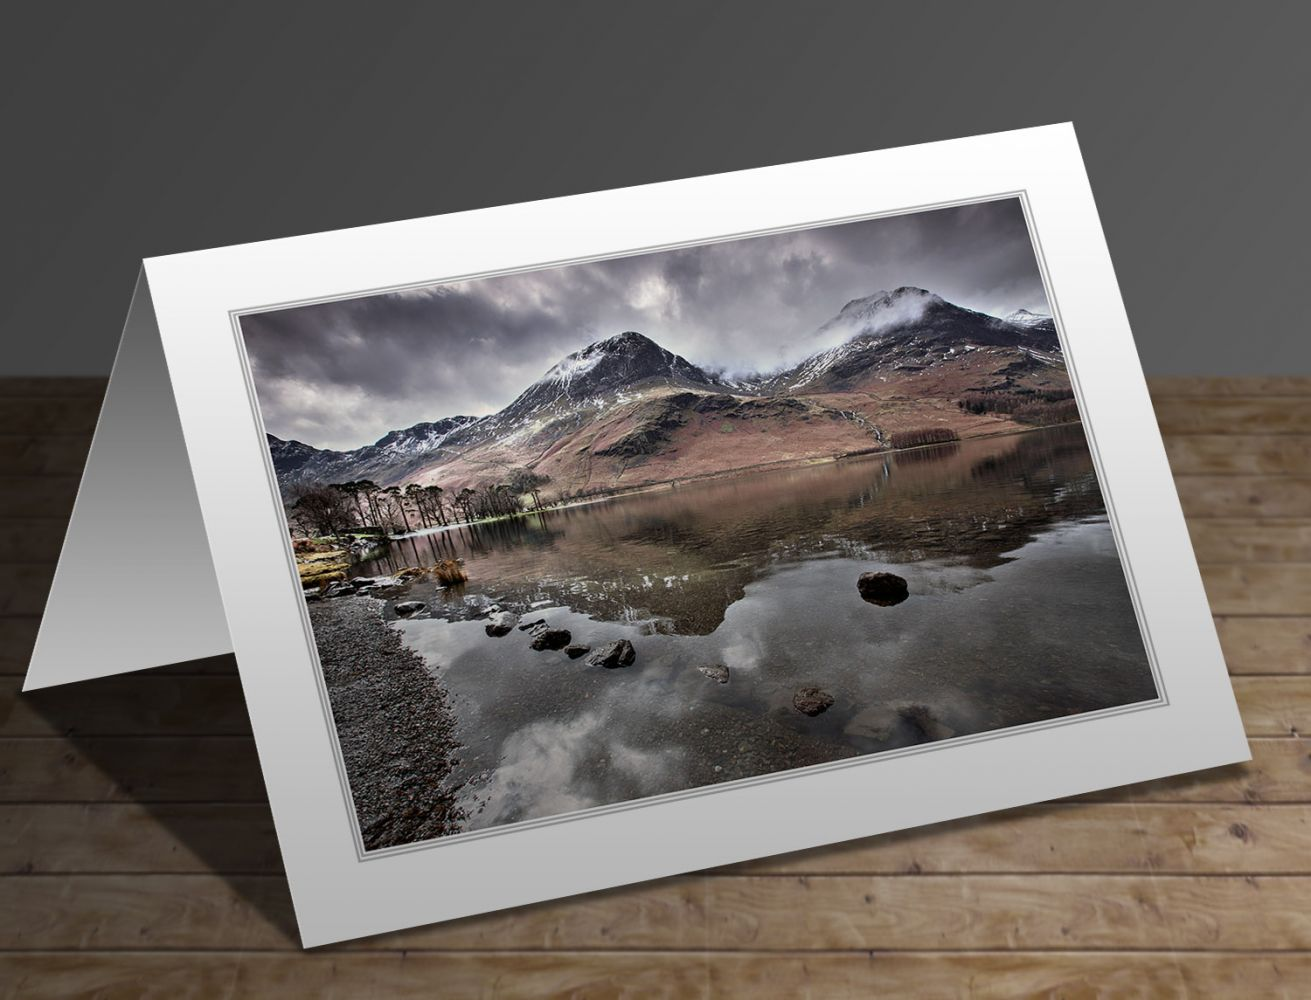 A greetings card containing the image Melting snow on High Crag Buttermere by Martin Lawrence